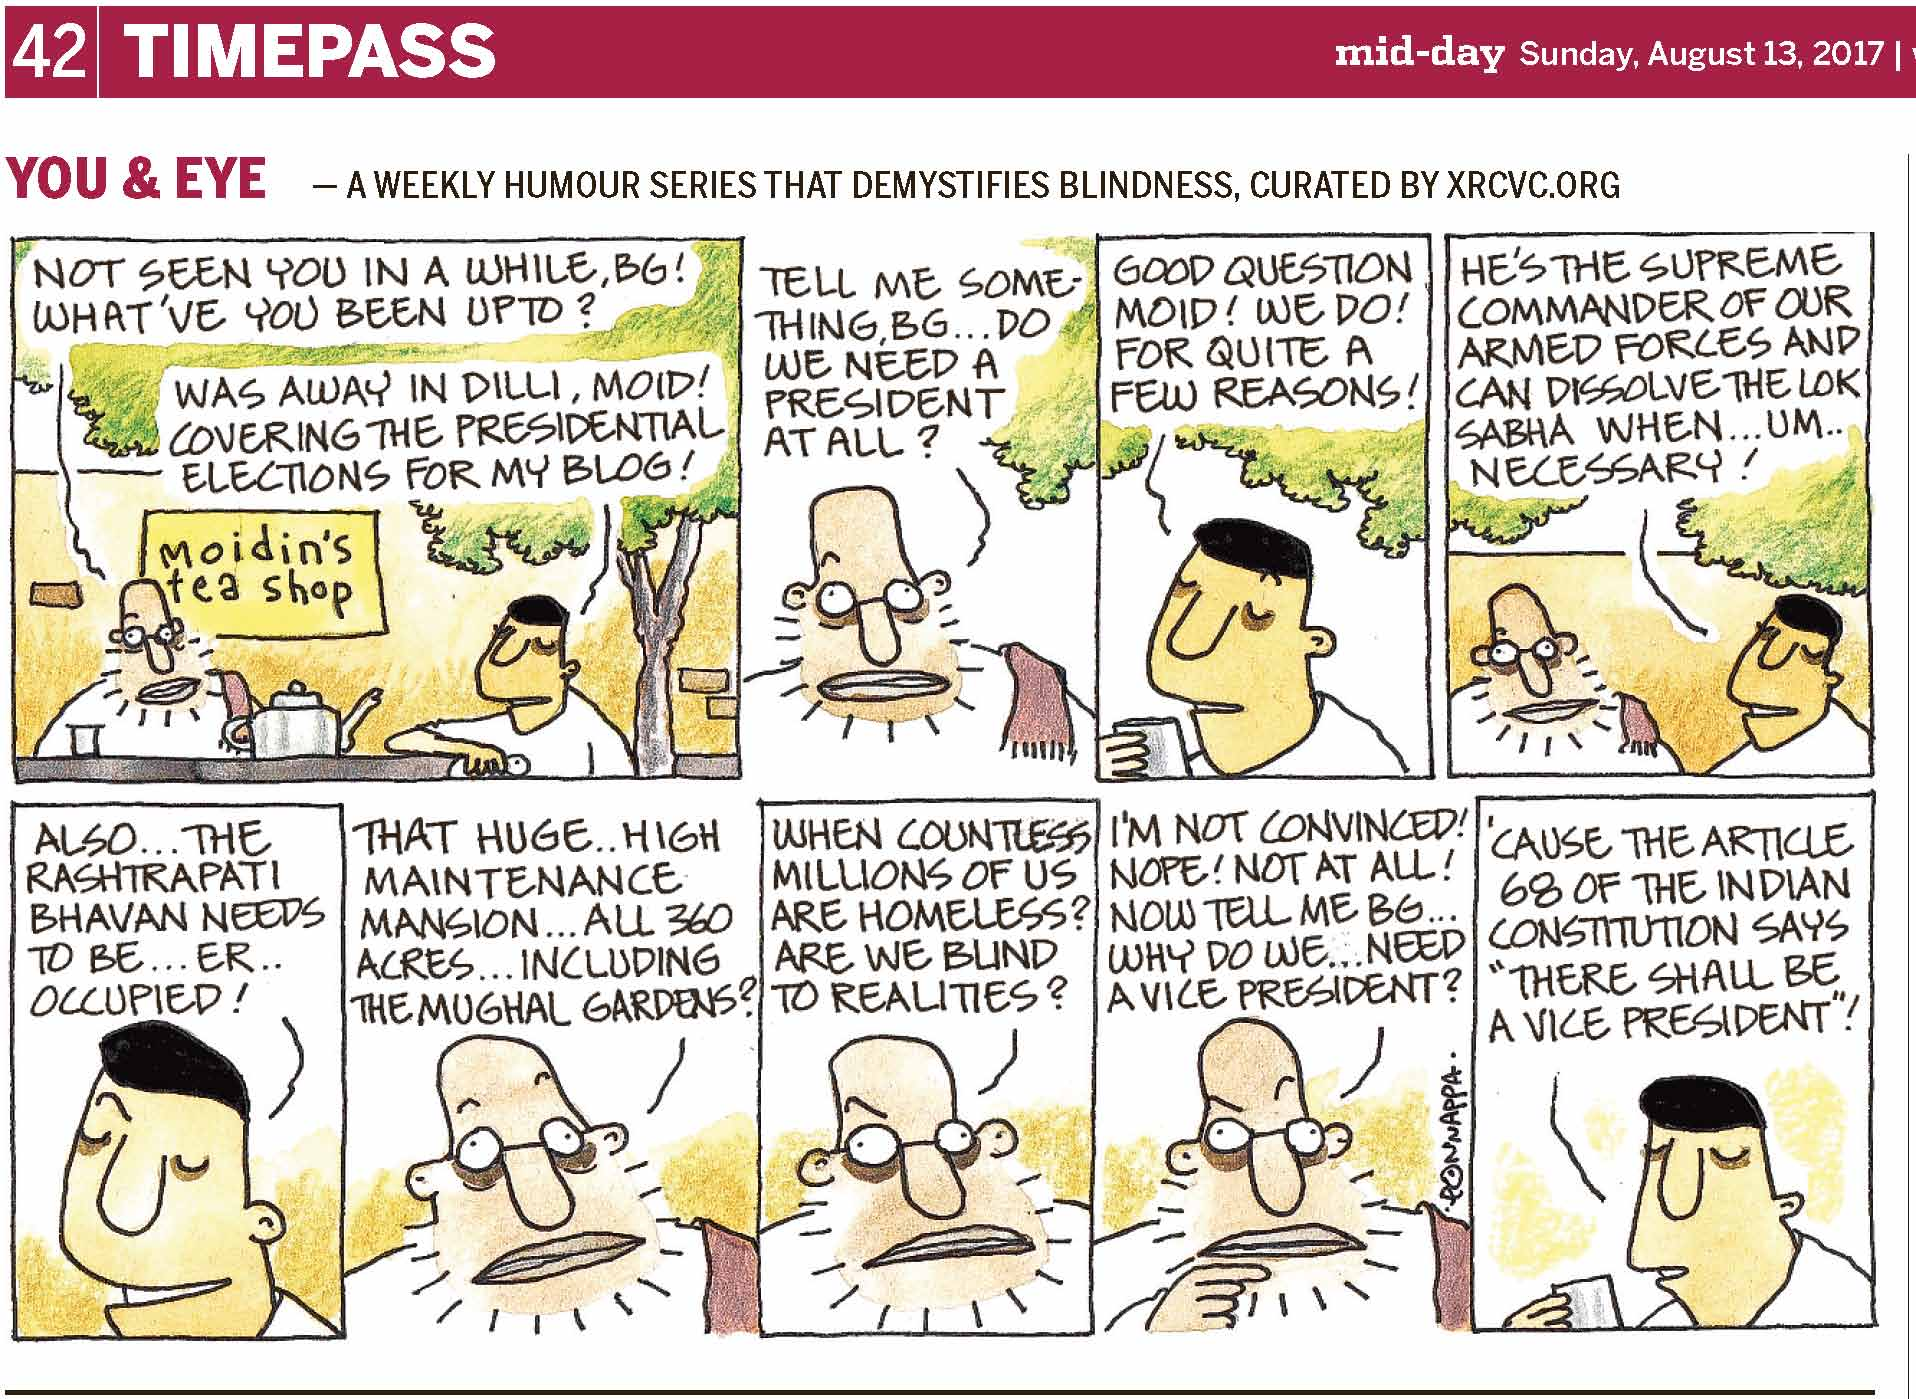 (top-left) 42 | TIMEPASS (top-right) mid-day Sunday, August 13, 2017 | YOU & EYE – A WEEKLY HUMOUR SERIES THAT DEMYSTIFIES BLINDNESS, CURATED BY XRCVC.ORG Image description: A cartoon strip with 9 frames… Frame 1: (BG is seen resting his right elbow on a table, behind which there is a bald, bespectacled man with short scanty beard. A signboard stating